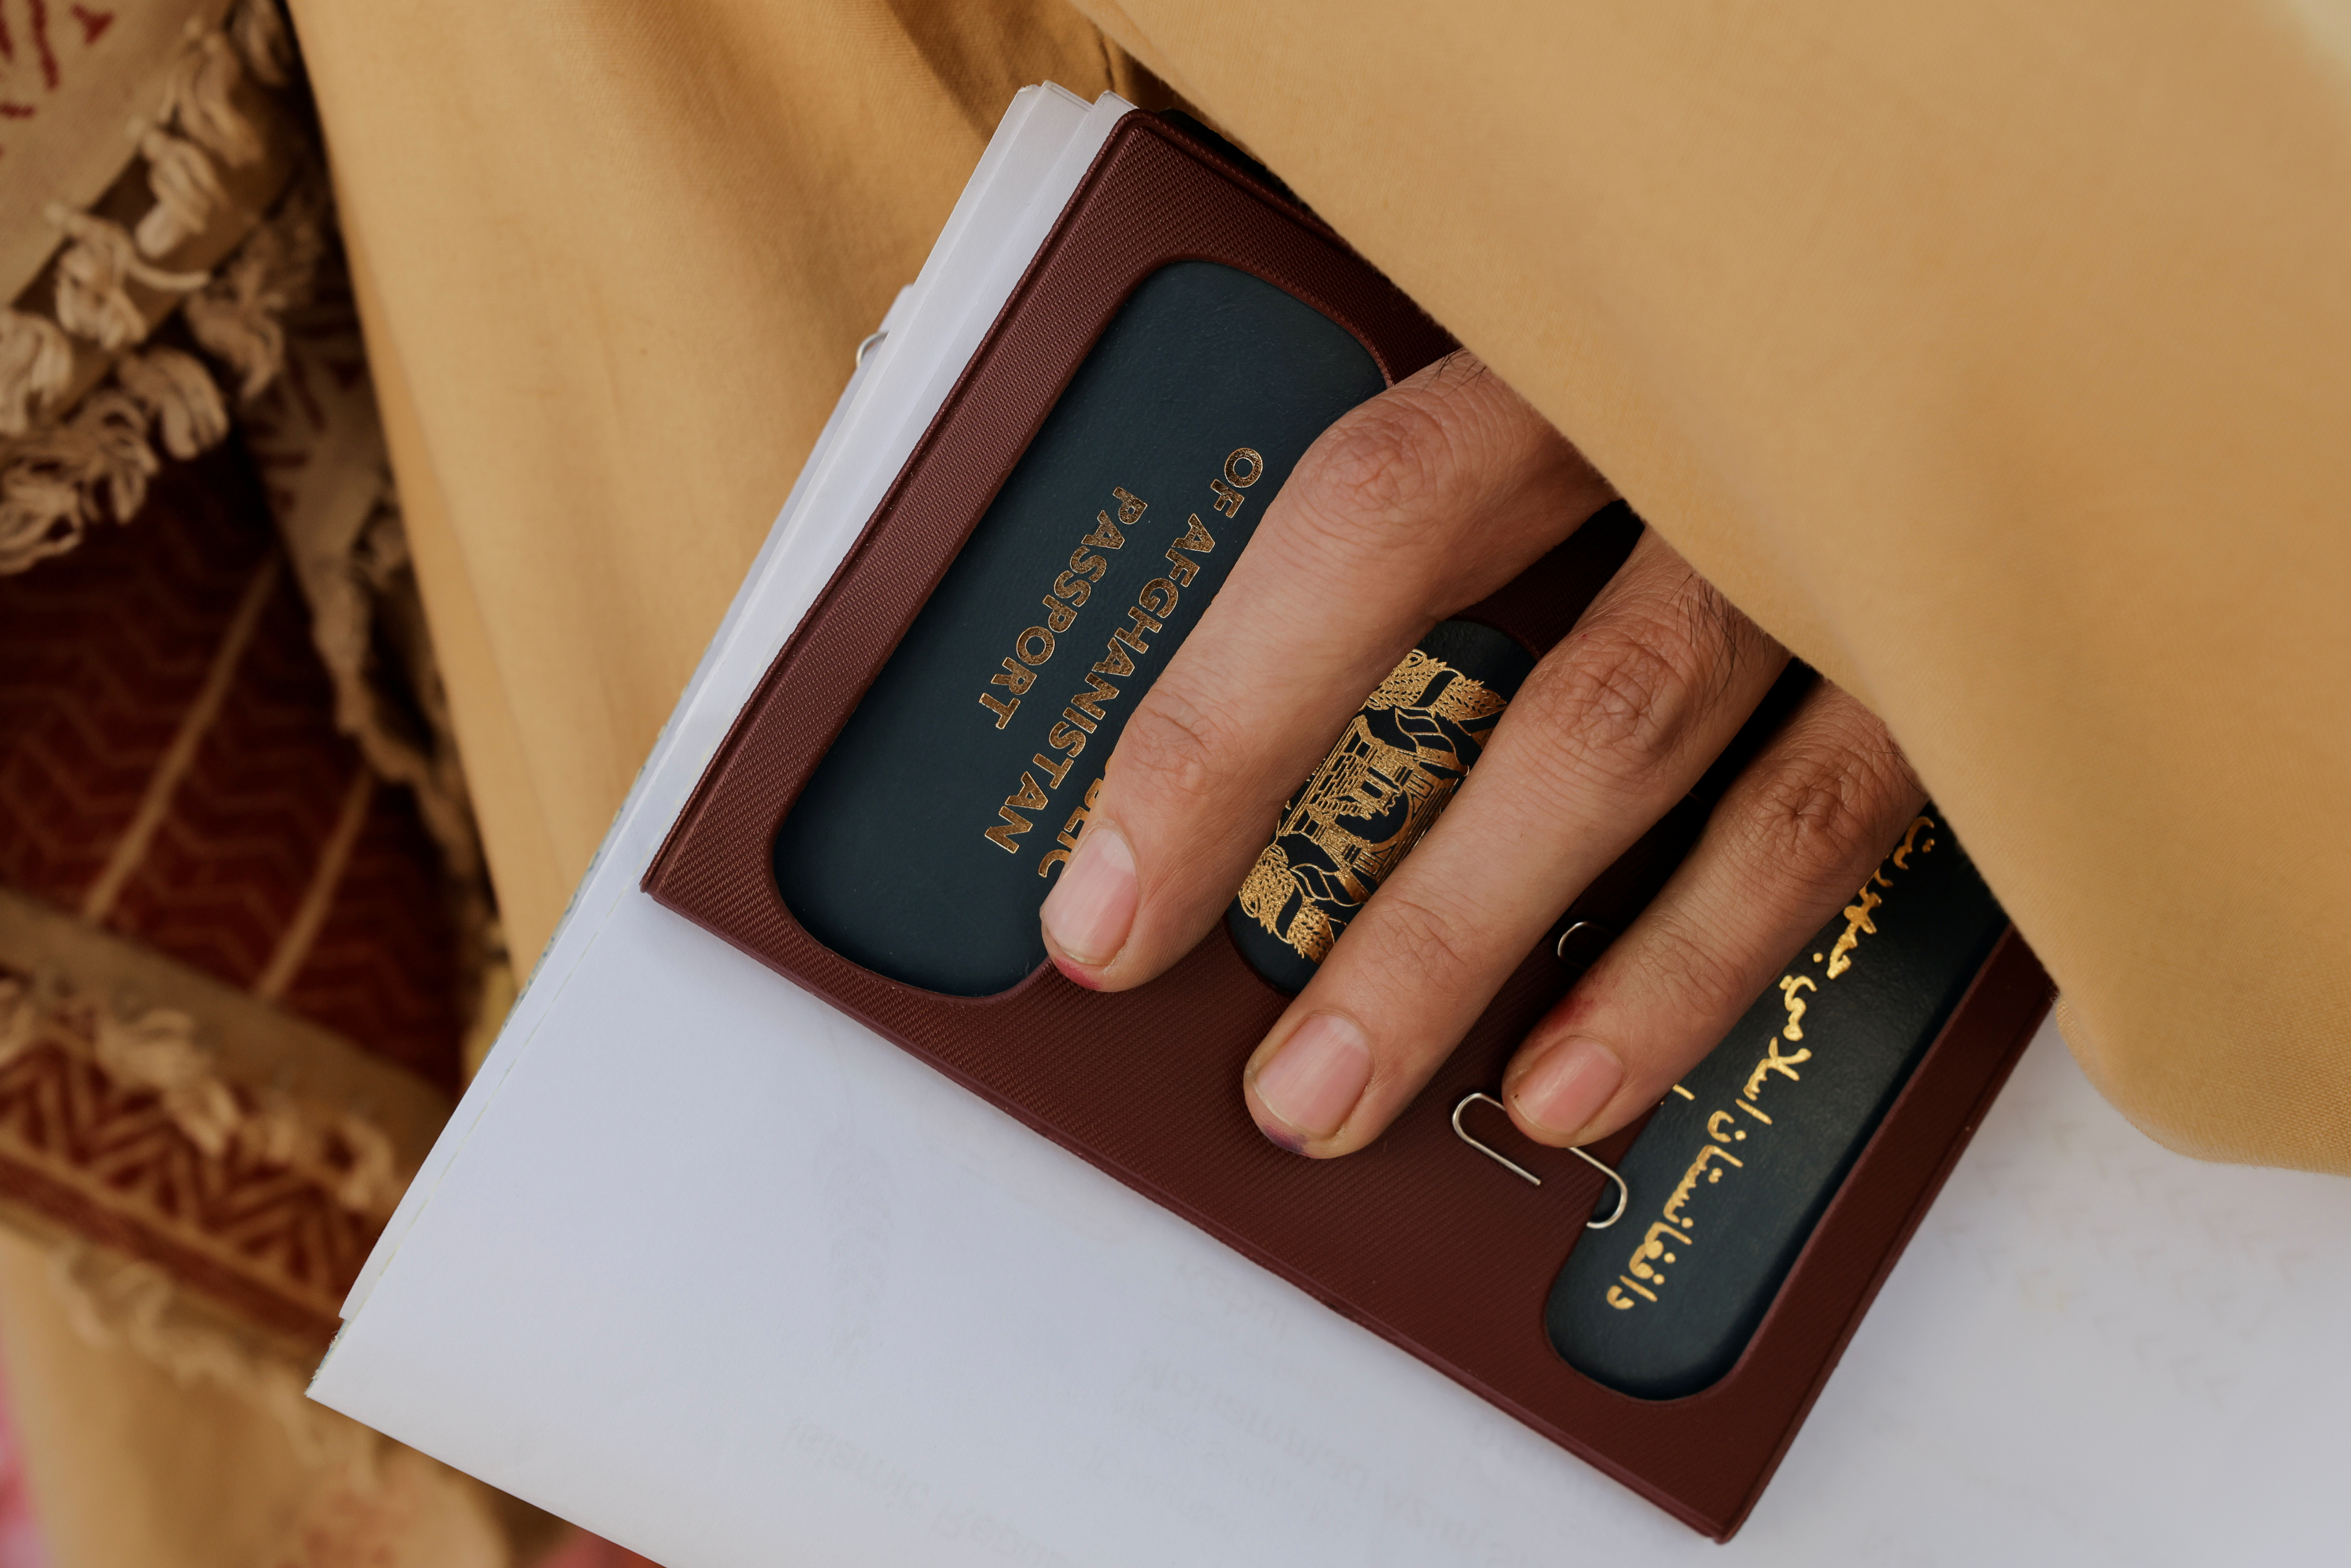 A man holds an expired passport as Afghans gather outside the passport office after Taliban officials announced they will start issuing passports to its citizens again, following months of delays that hampered attempts by those trying to flee the country after the Taliban seized control, in Kabul, Afghanistan October 6, 2021. REUTERS/Jorge Silva